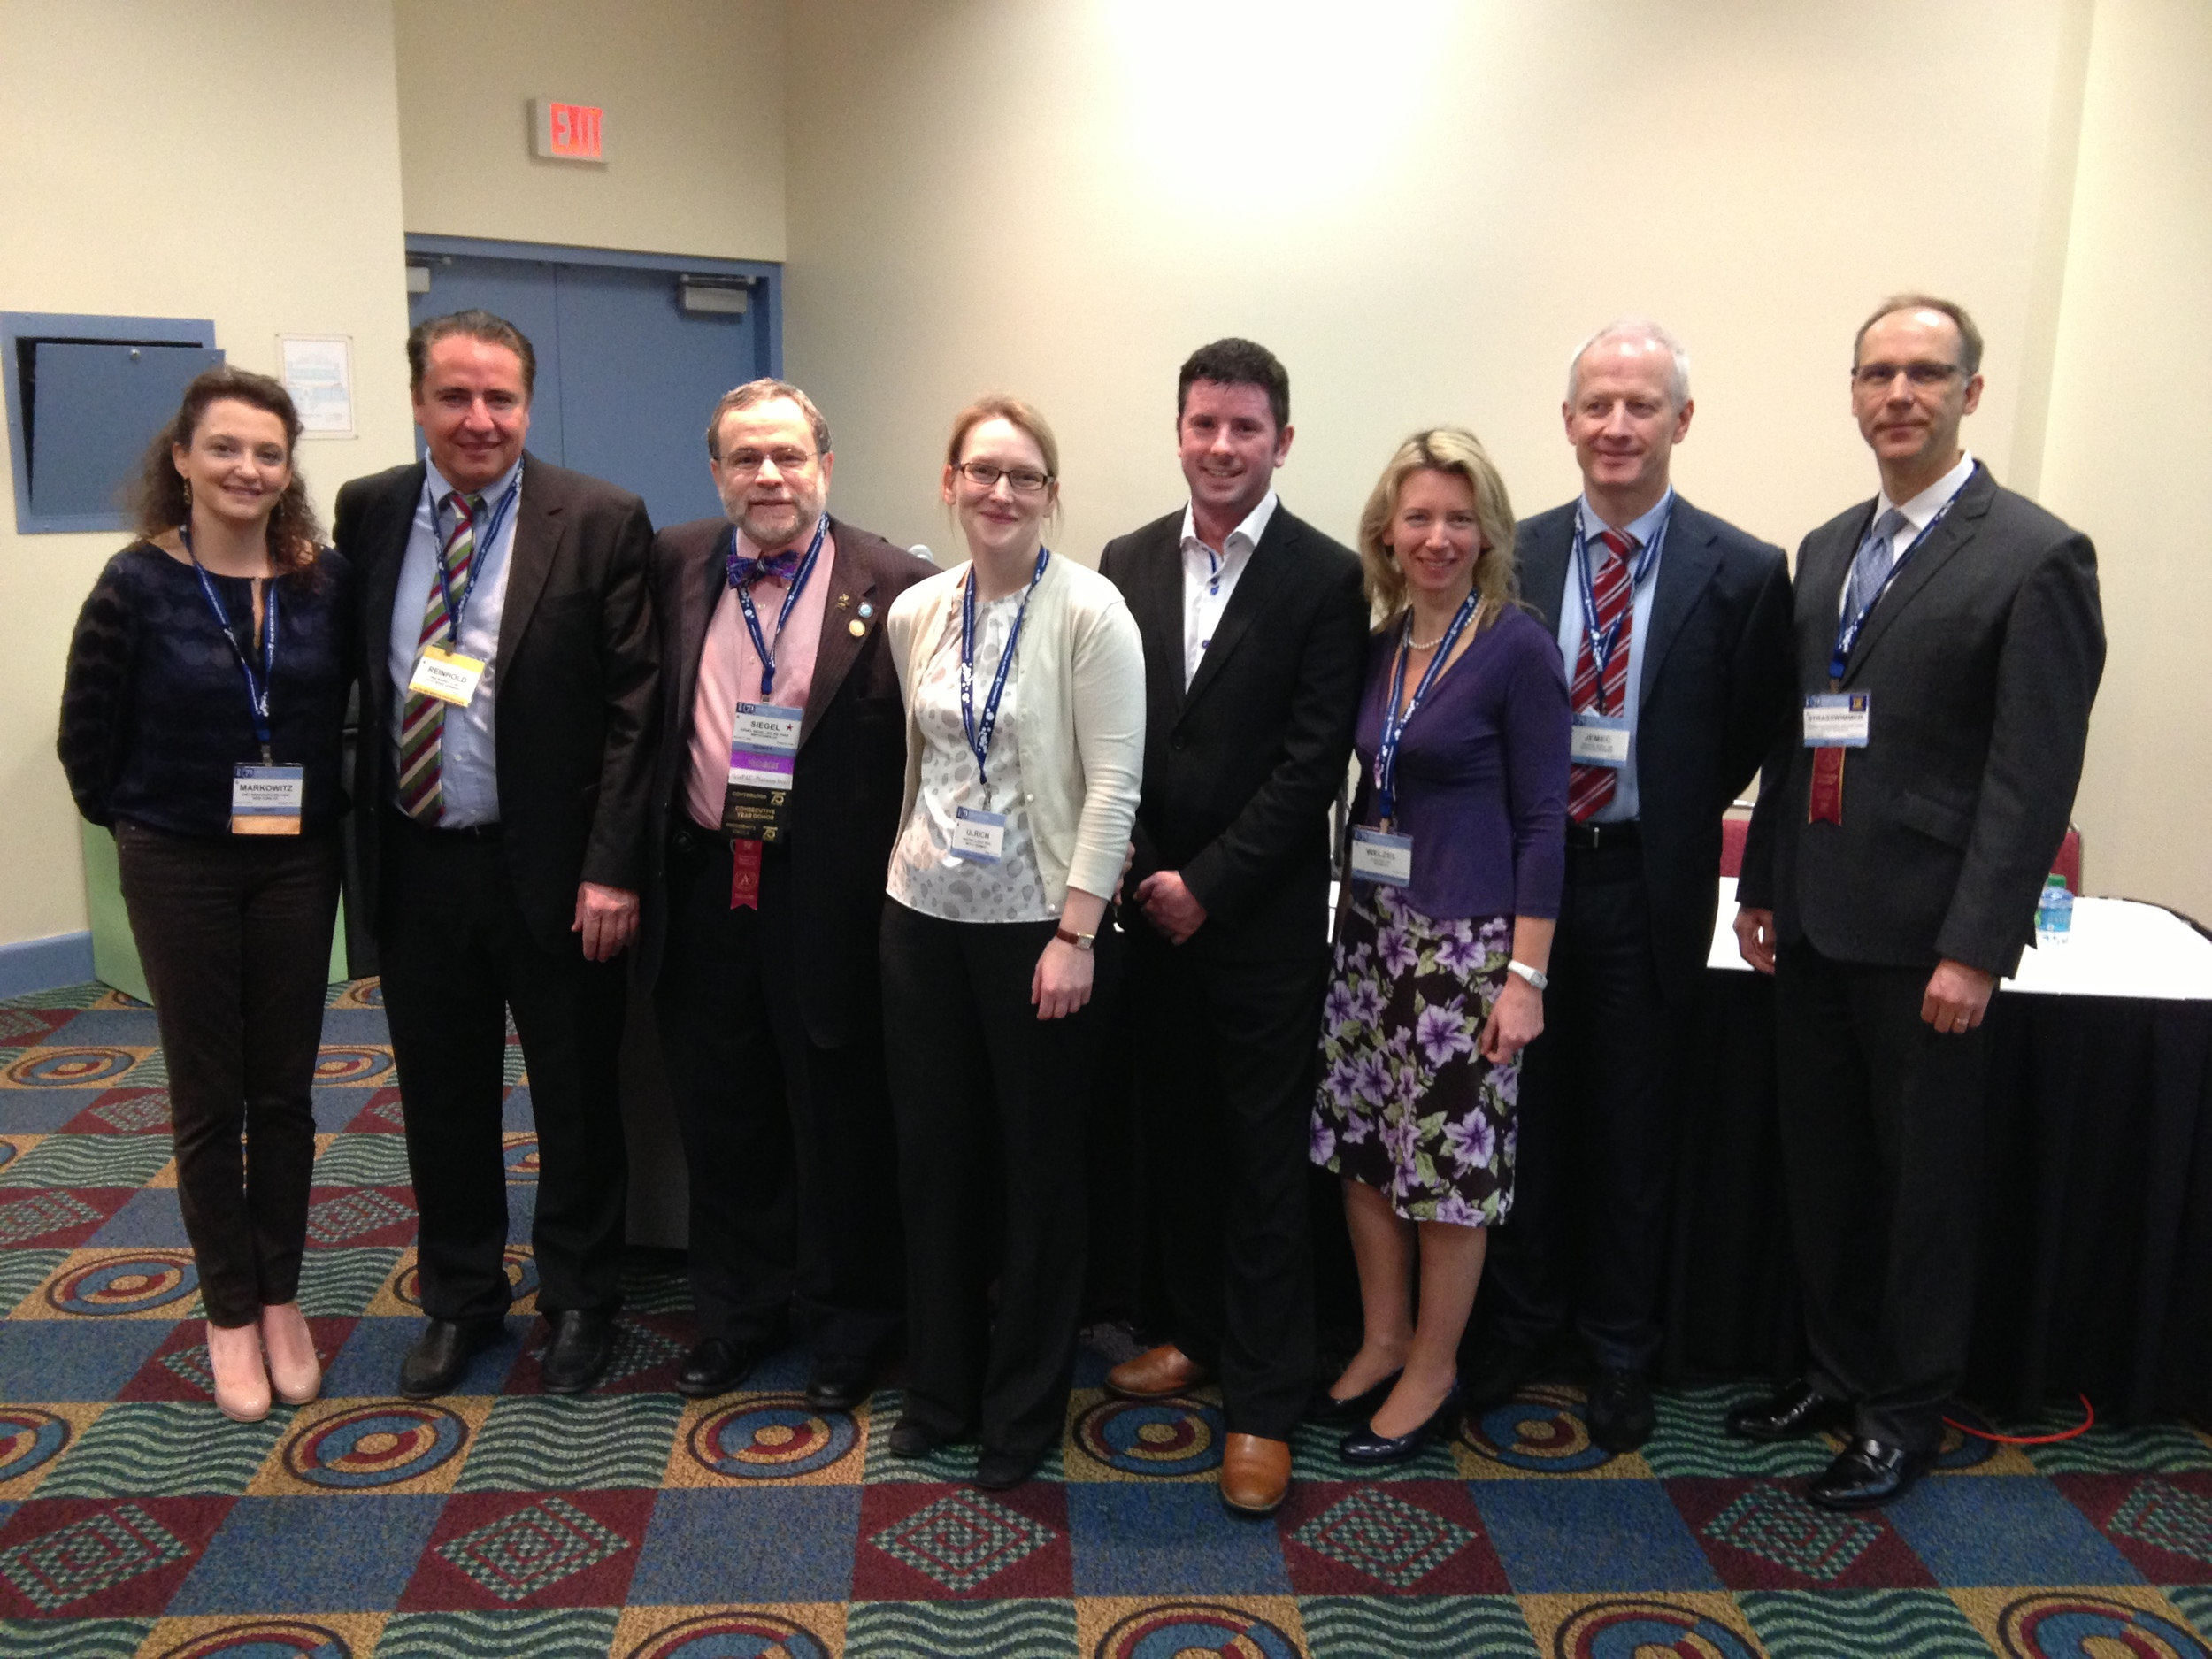 Founding Members of the OCT Working Group at the 2013 AAD Annual Meeting in Miami. Left to right: Dr. Markowitz, Prof. Reinhold, Dr. Siegel, Dr. Ulrich, Dr. McKenzie, Prof. Welzel, Prof. Jemec, Dr. Strasswimmer